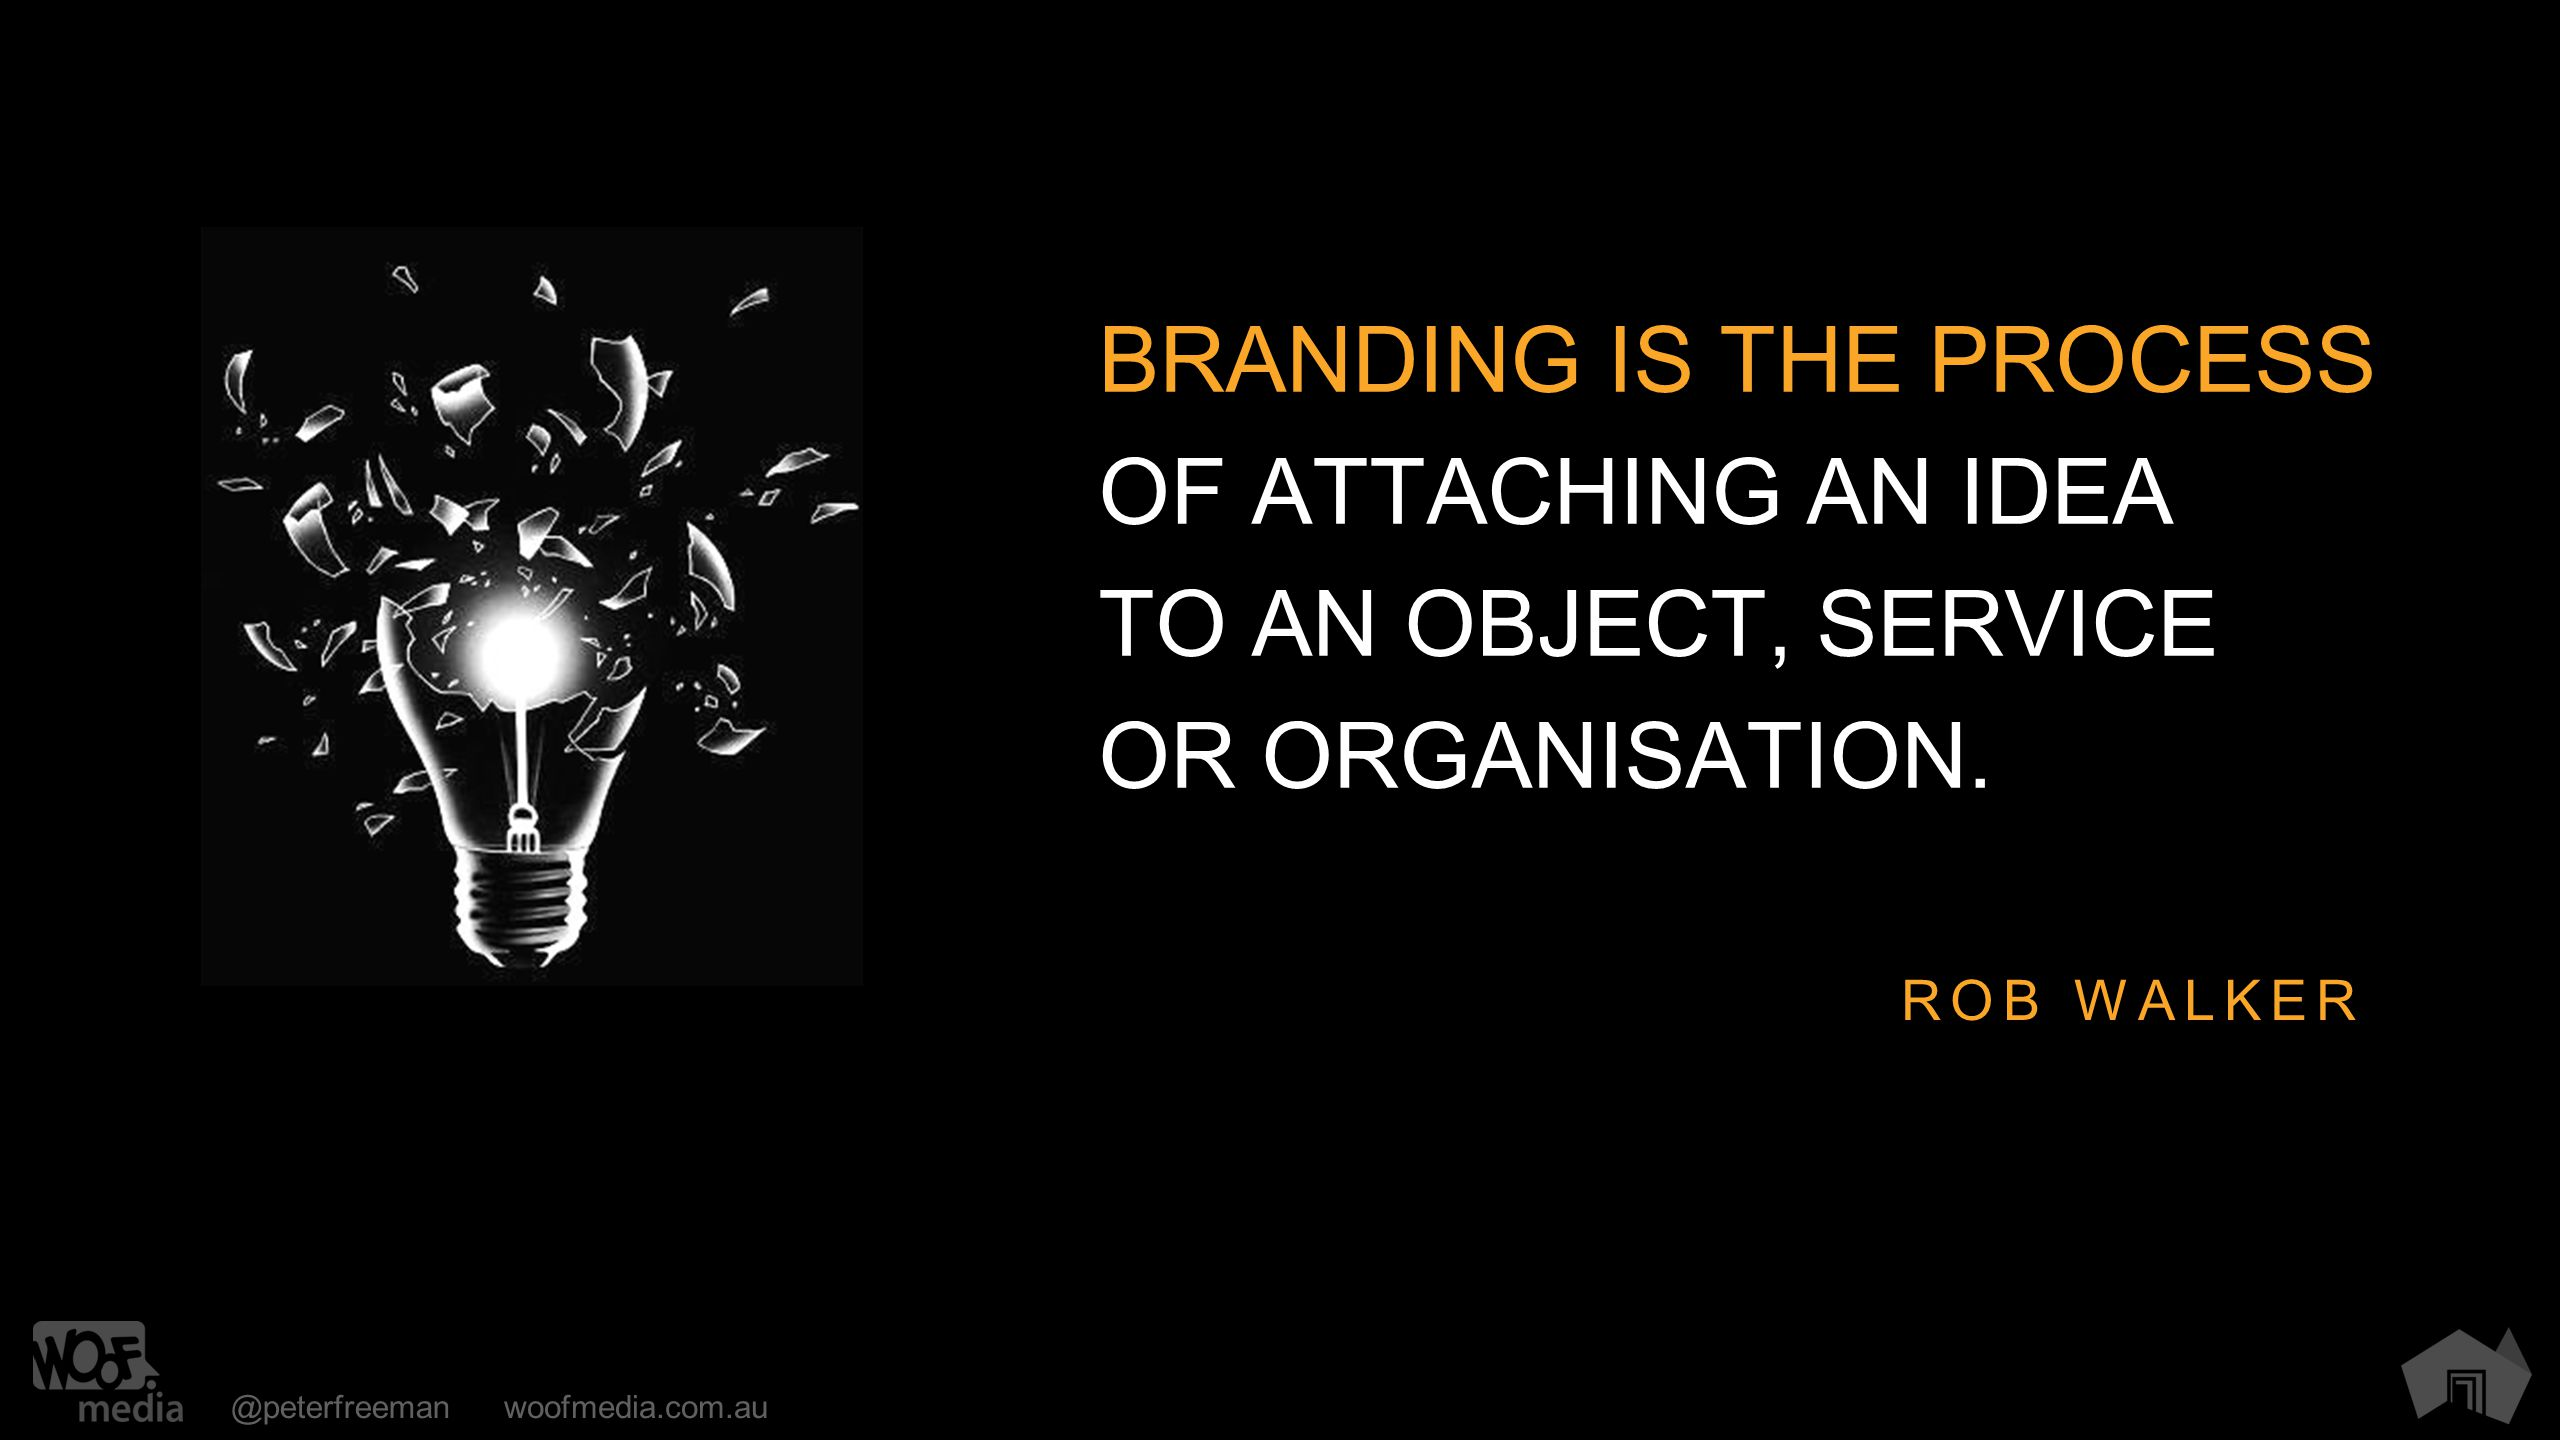 @peterfreemanwoofmedia.com.au BRANDING IS THE PROCESS OF ATTACHING AN IDEA TO AN OBJECT, SERVICE OR ORGANISATION. ROB WALKER